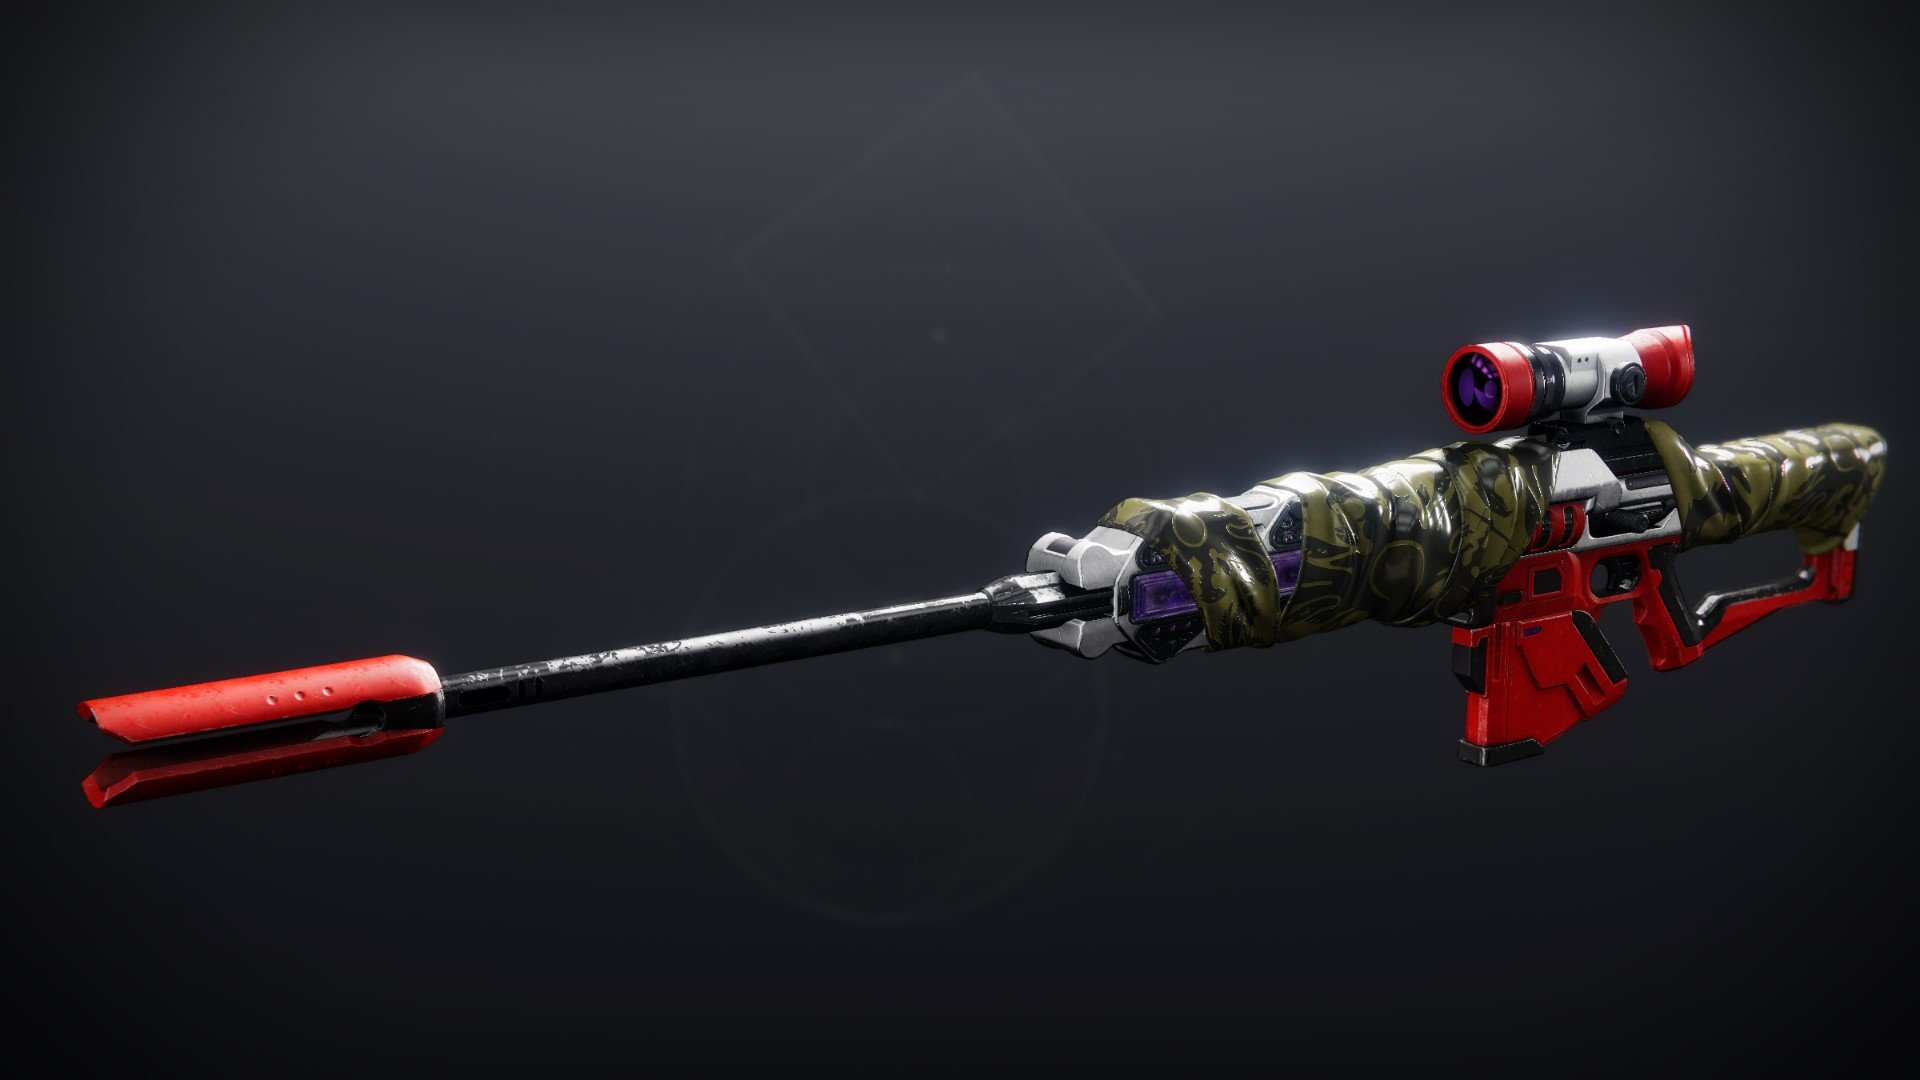 An in-game render of the Rubicund Wrap (Ornament).